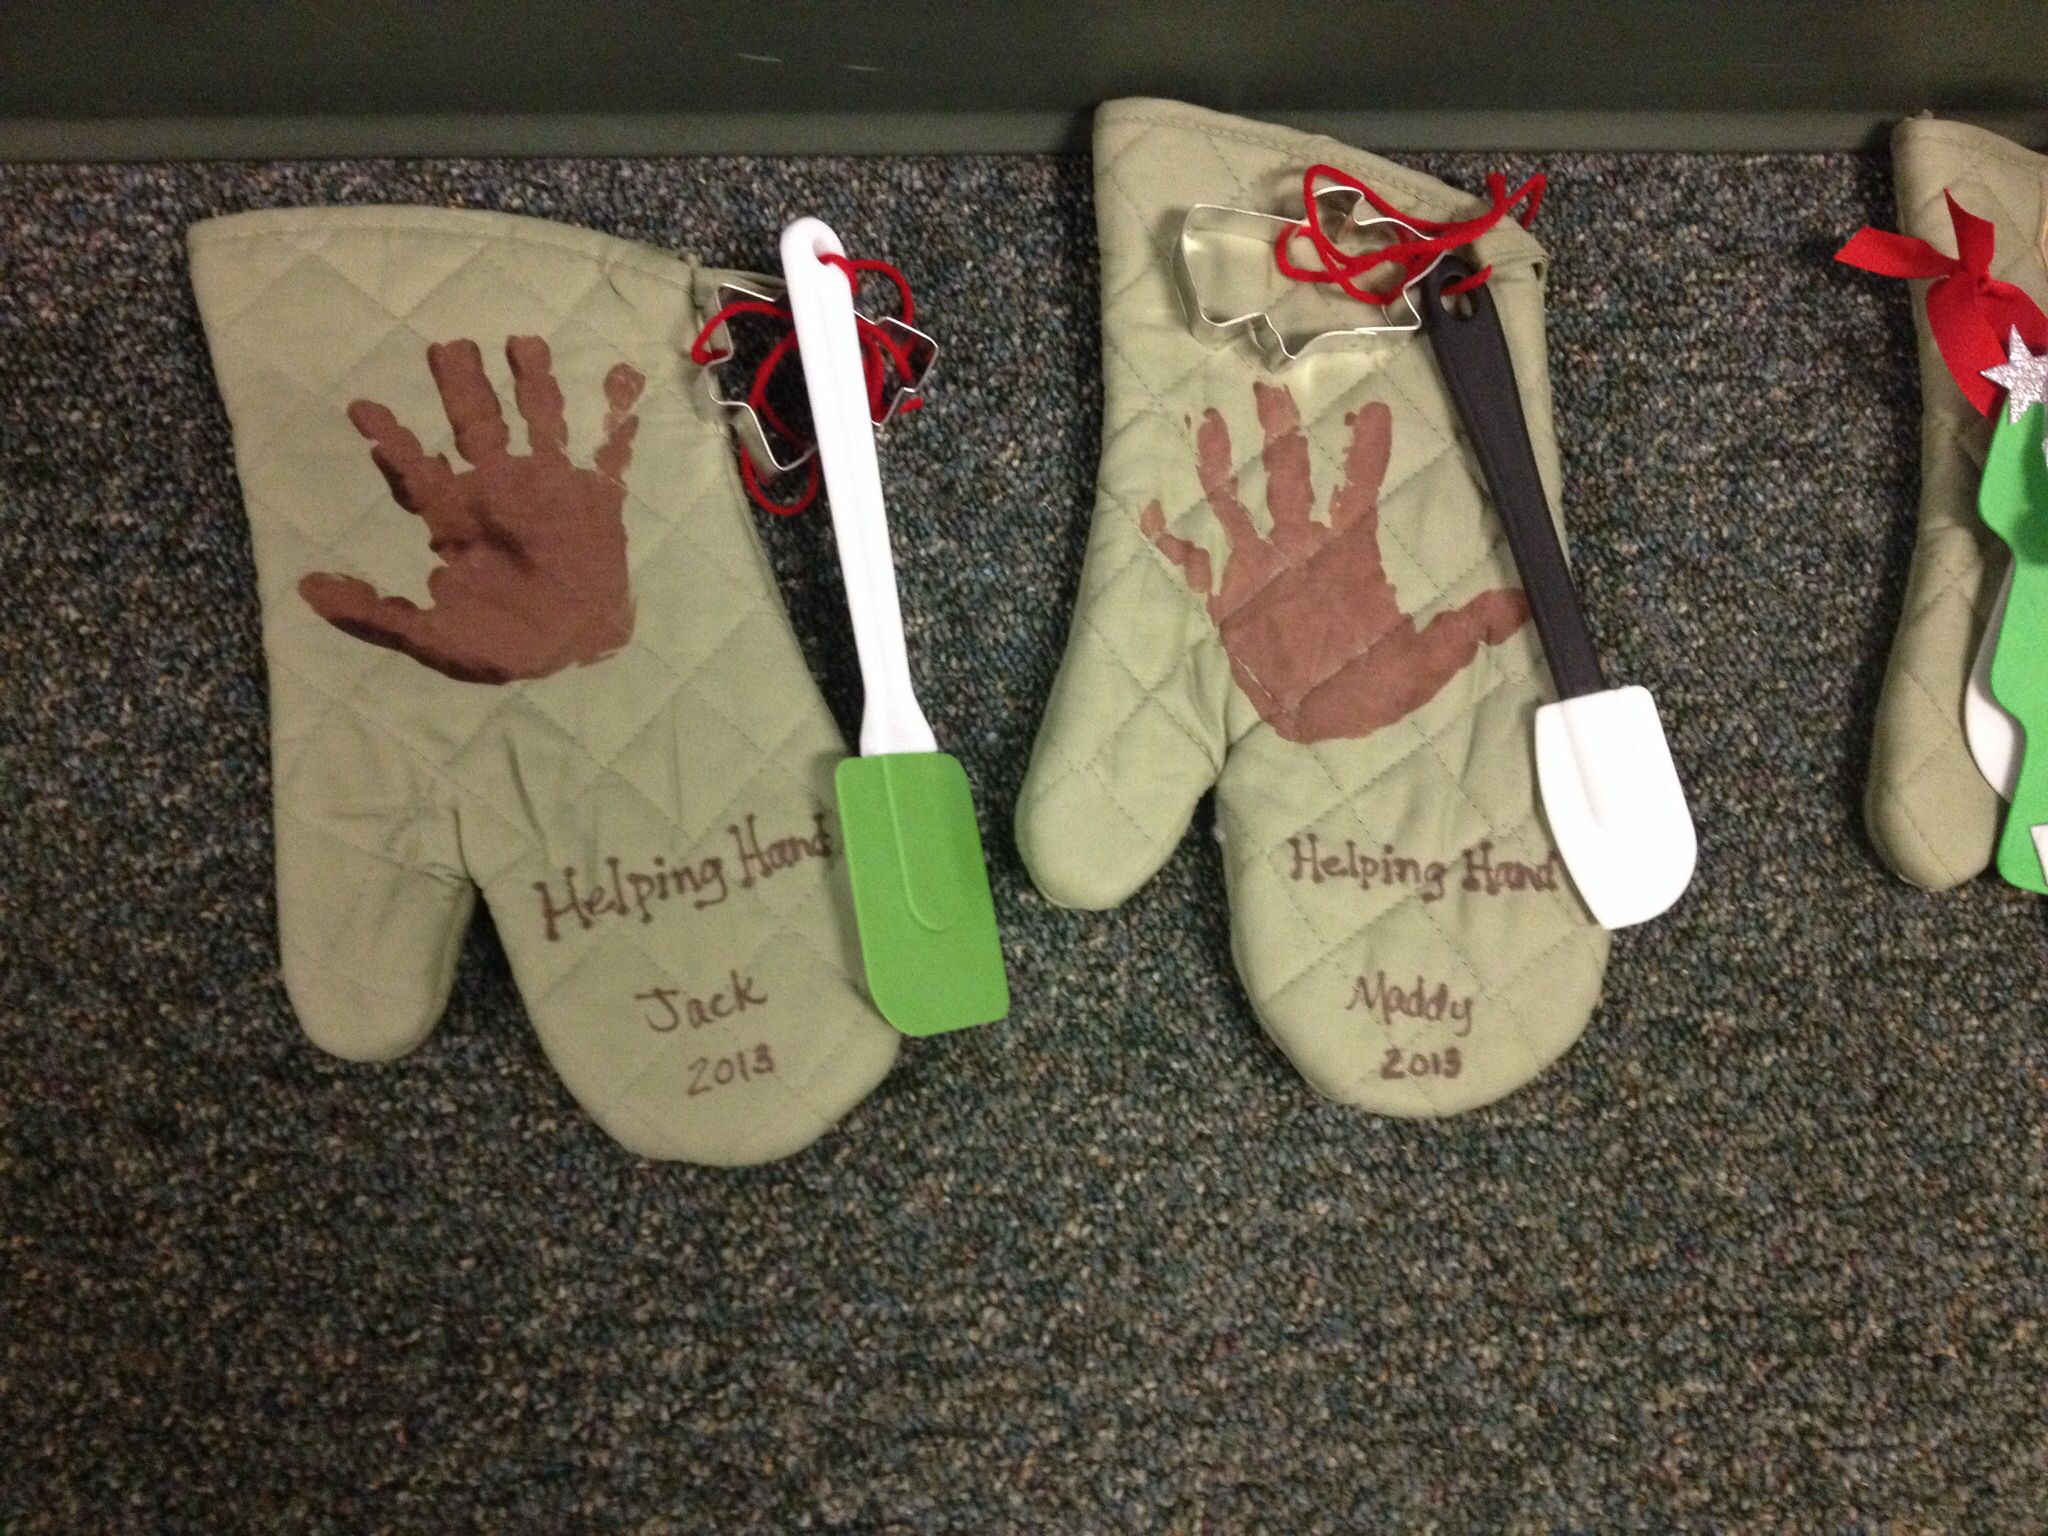 Helping Hand oven mitts as Christmas gifts for parents ...